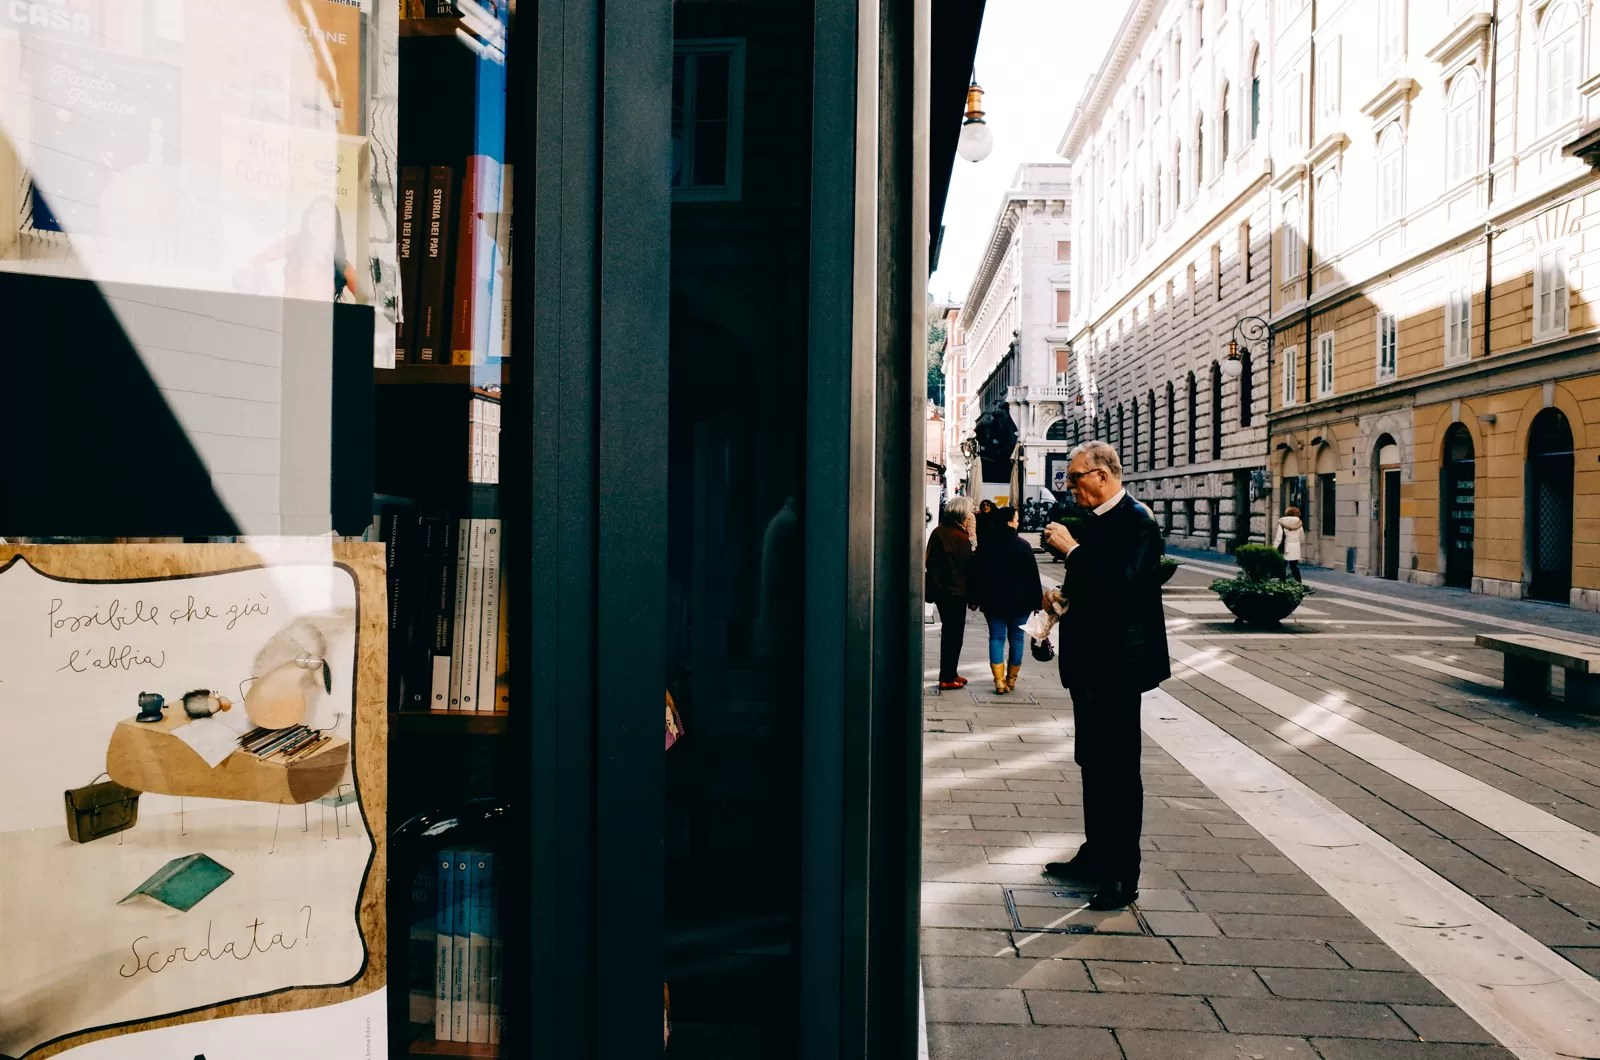 R0006699 - One Day in Trieste [Color Street Photography] - fotostreet.it